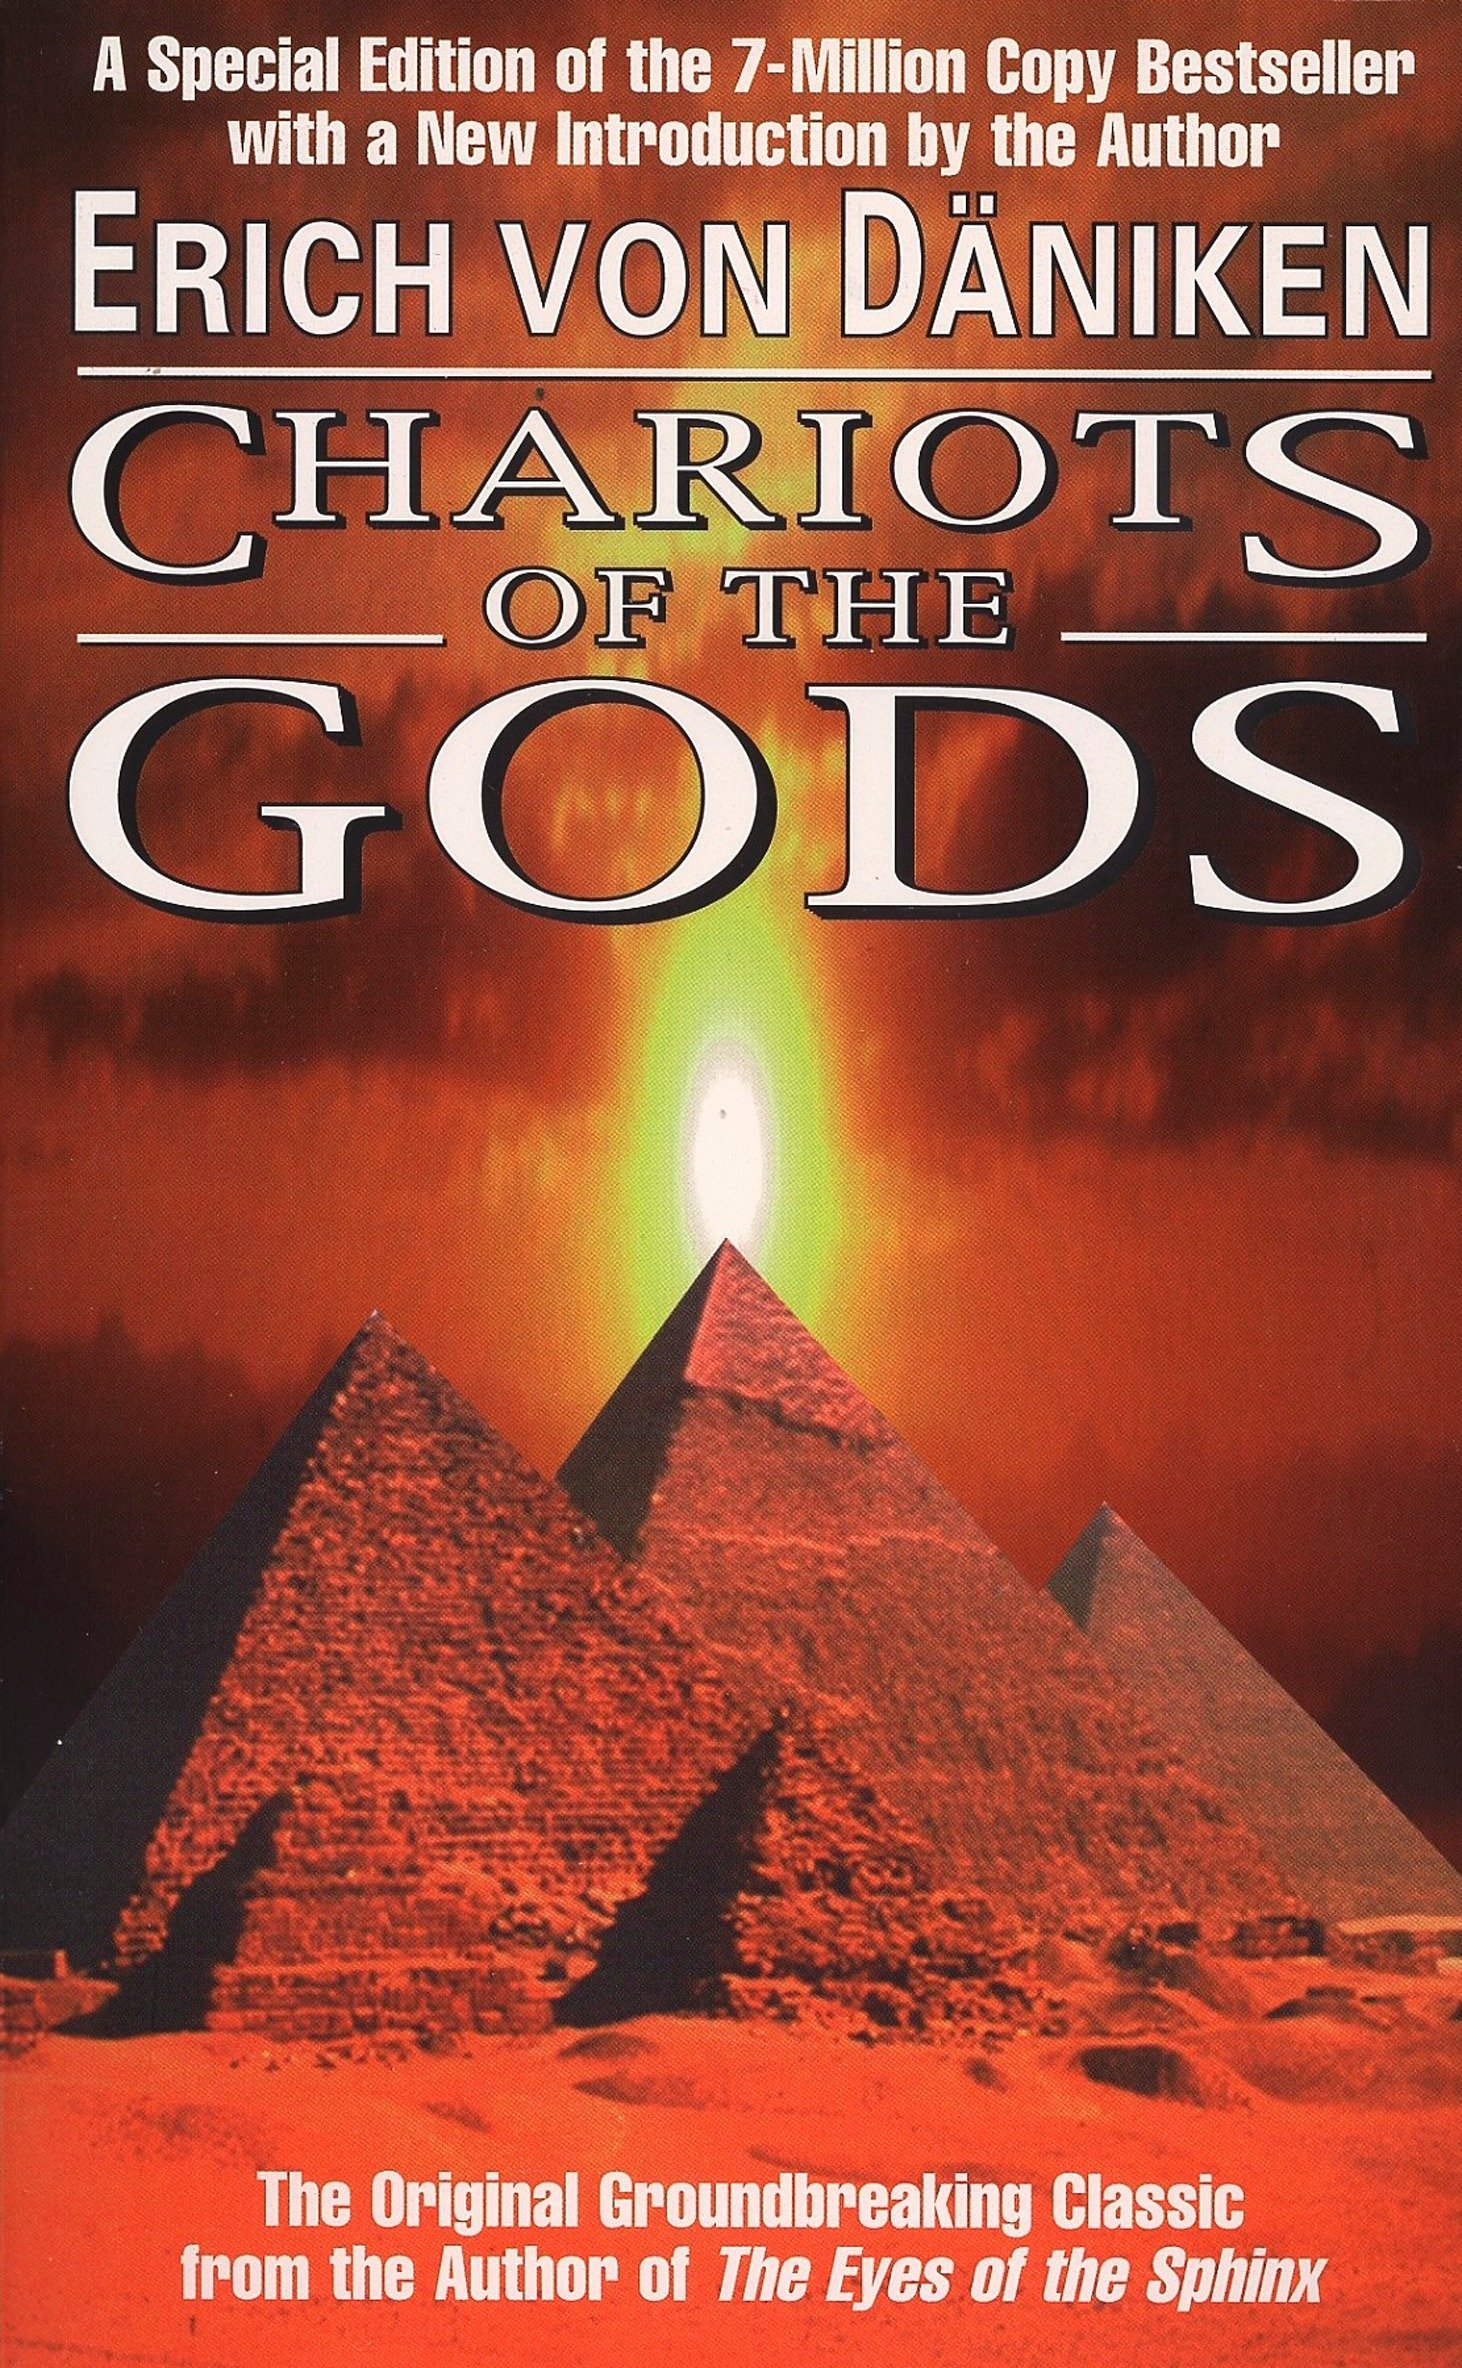 Chariots of the Gods: Erich Von Daniken: 8601417232620: Books - Amazon.ca